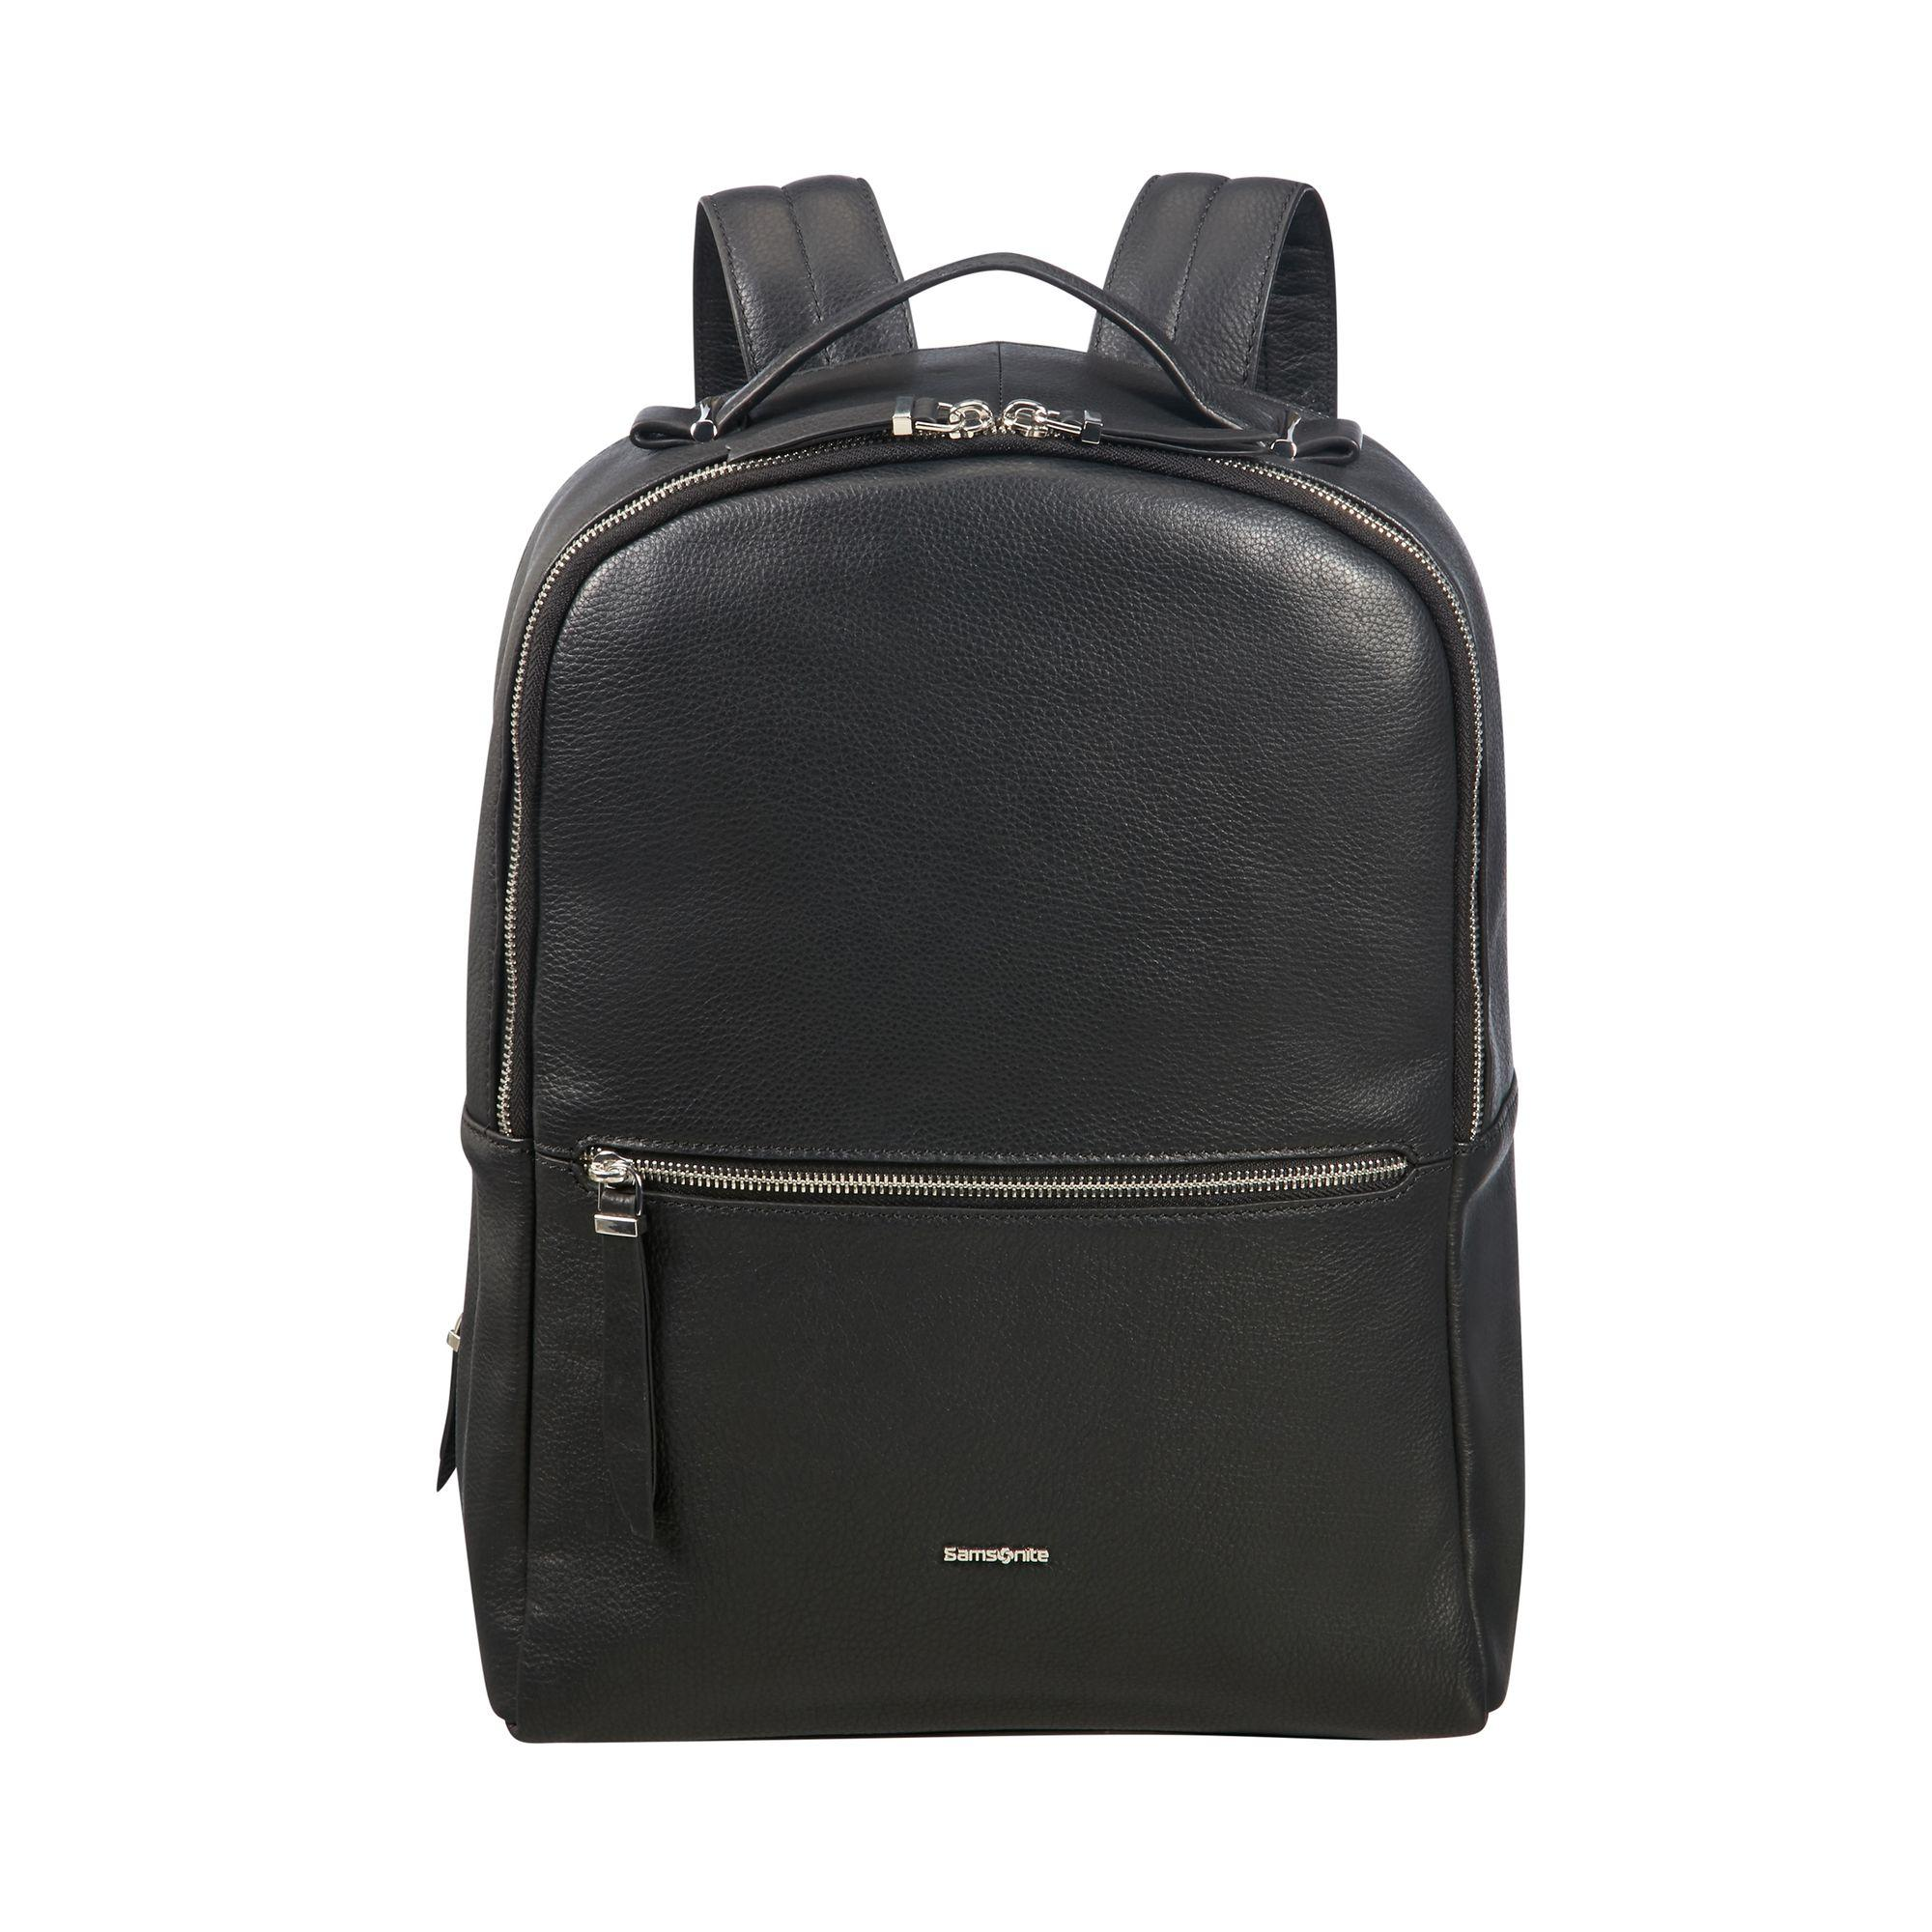 "Samsonite Highline II pc ryggsekk i skinn 14,1"", Svart Samsonite"